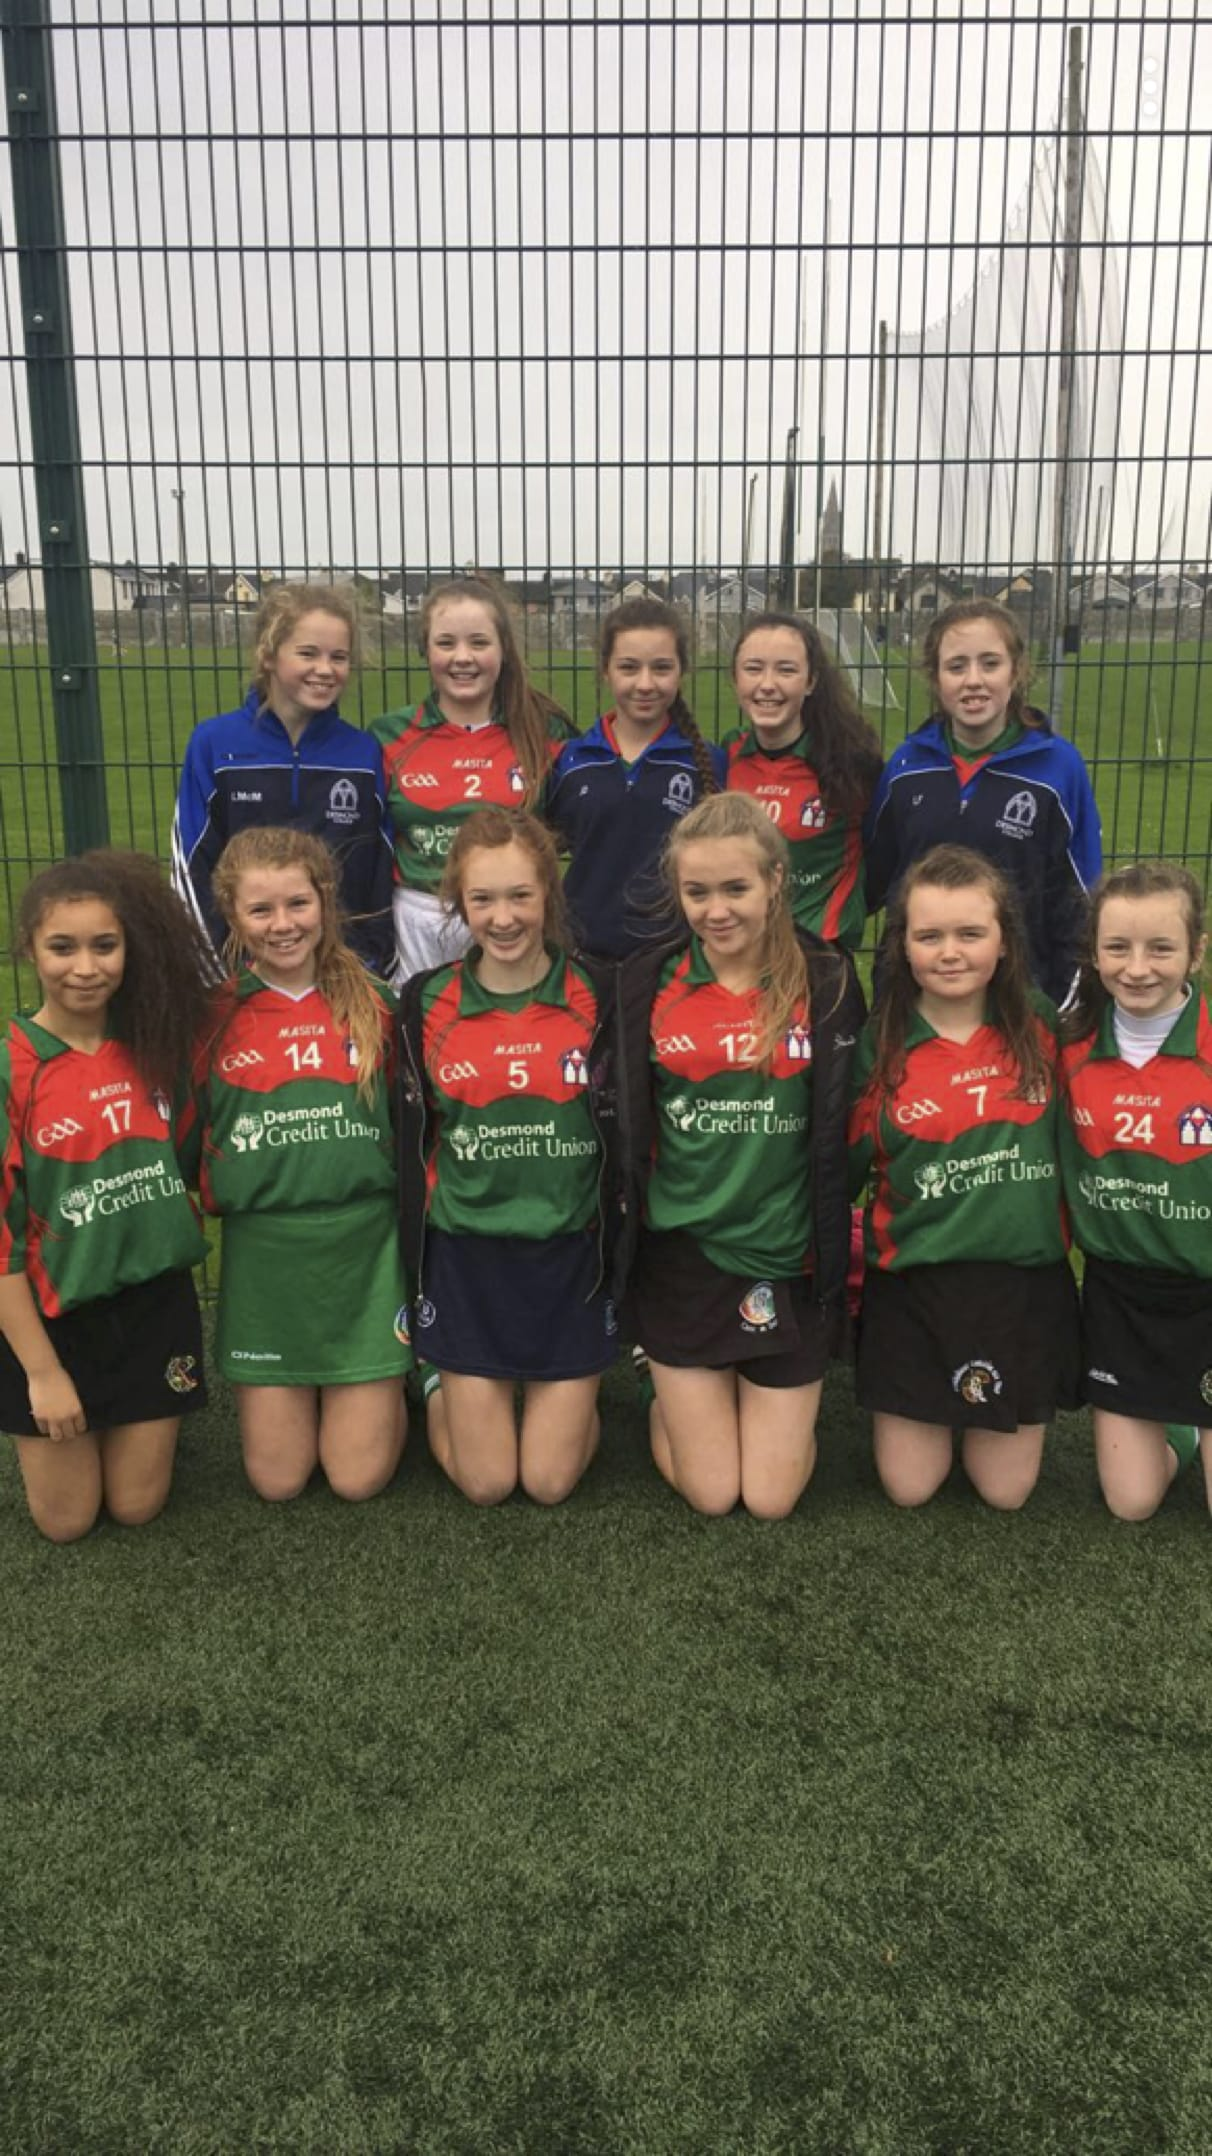 Oct 2017: First and Second Year Desmond College Camogie Team 7-a-side county blitz today in Mick Neville Park